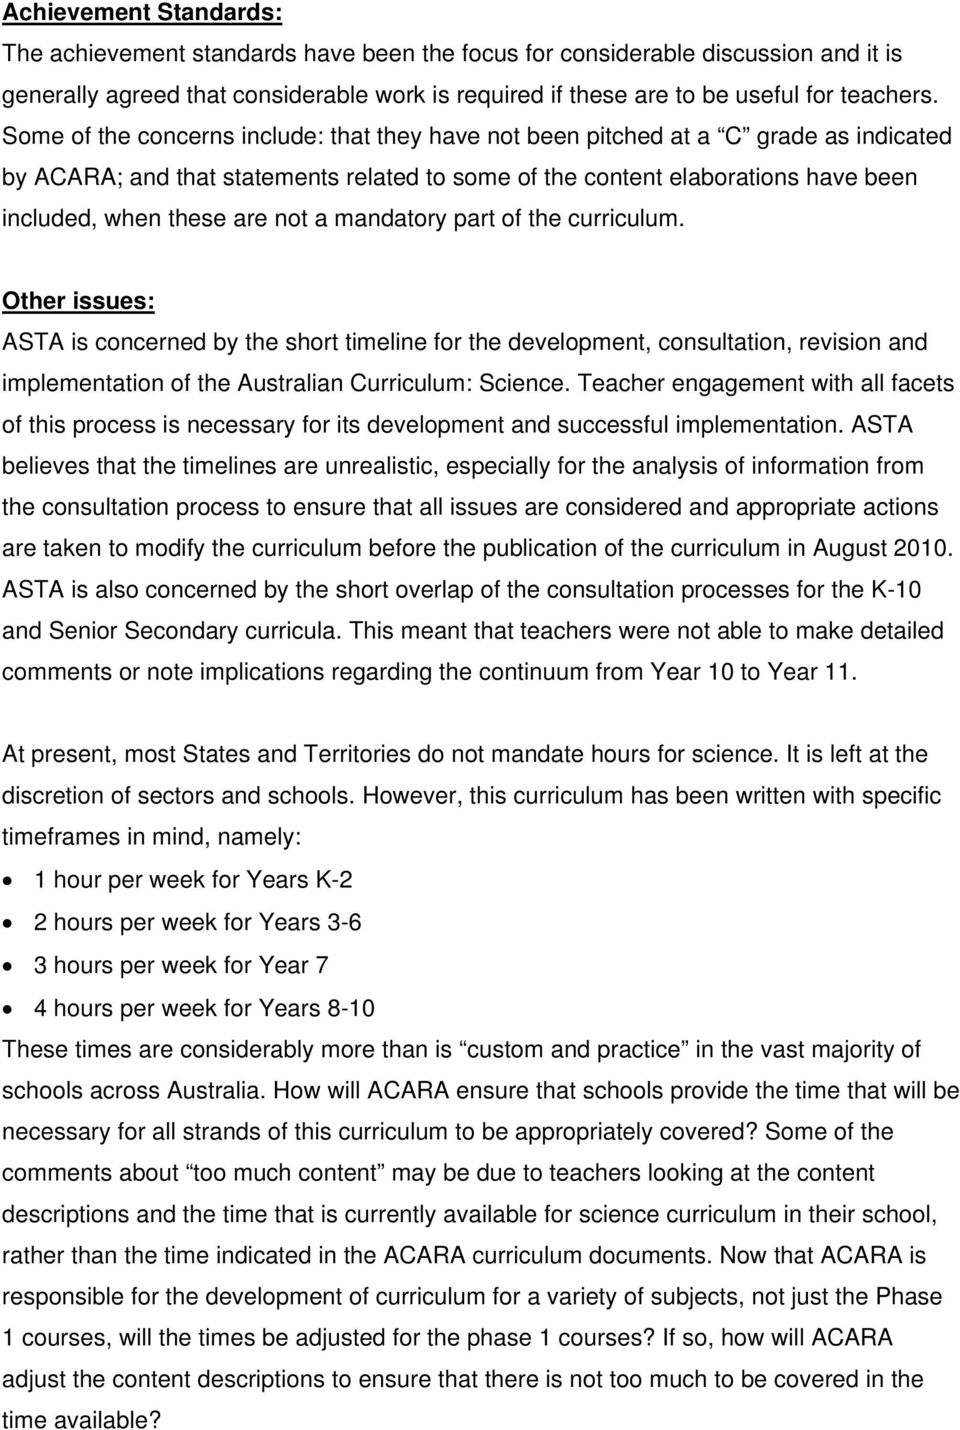 not a mandatory part of the curriculum. Other issues: ASTA is concerned by the short timeline for the development, consultation, revision and implementation of the Australian Curriculum: Science.